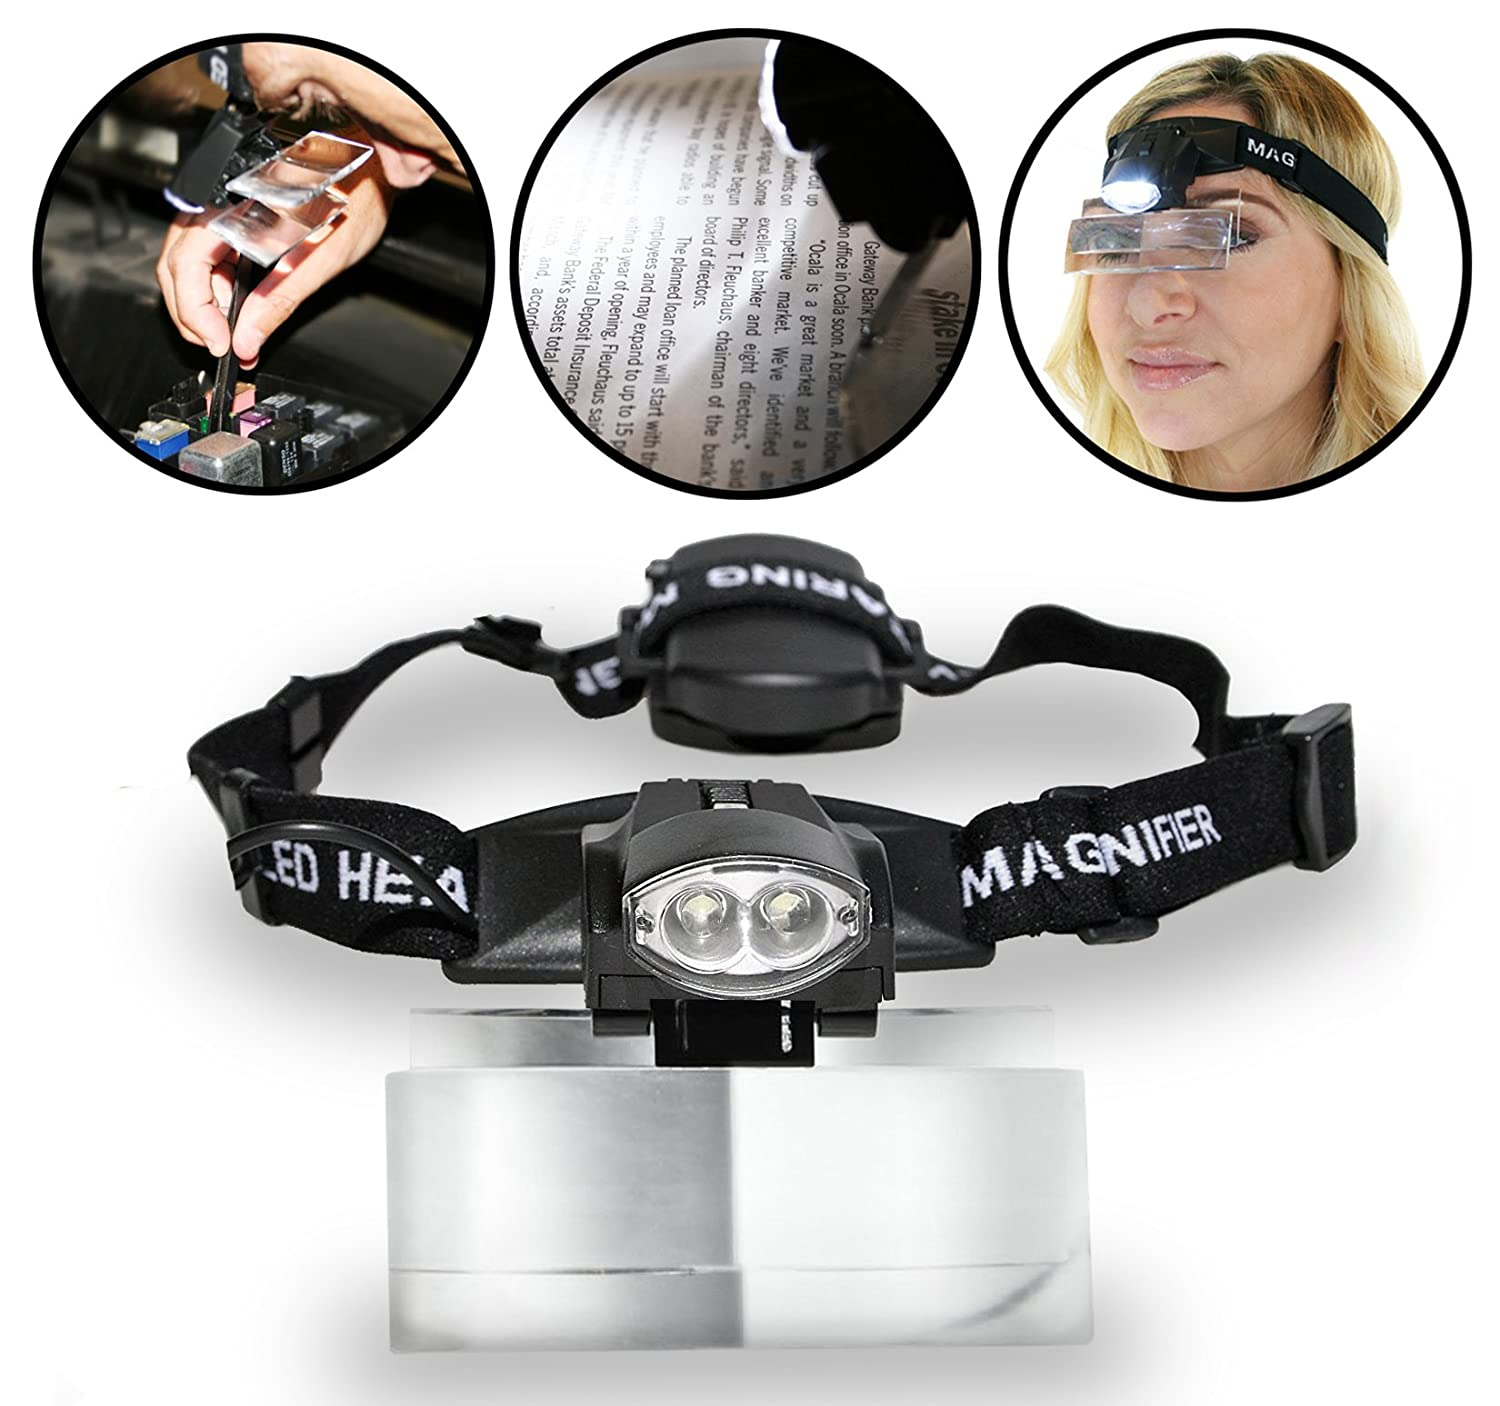 Magnifying Glasses For Close Work With Light LED Headlight With Magnifier Interchangeable Glasses Jeweler's Loupe Magnifier For Close Work Reading Eyelash Electronics Hobby Craft 1.0x 6.0x